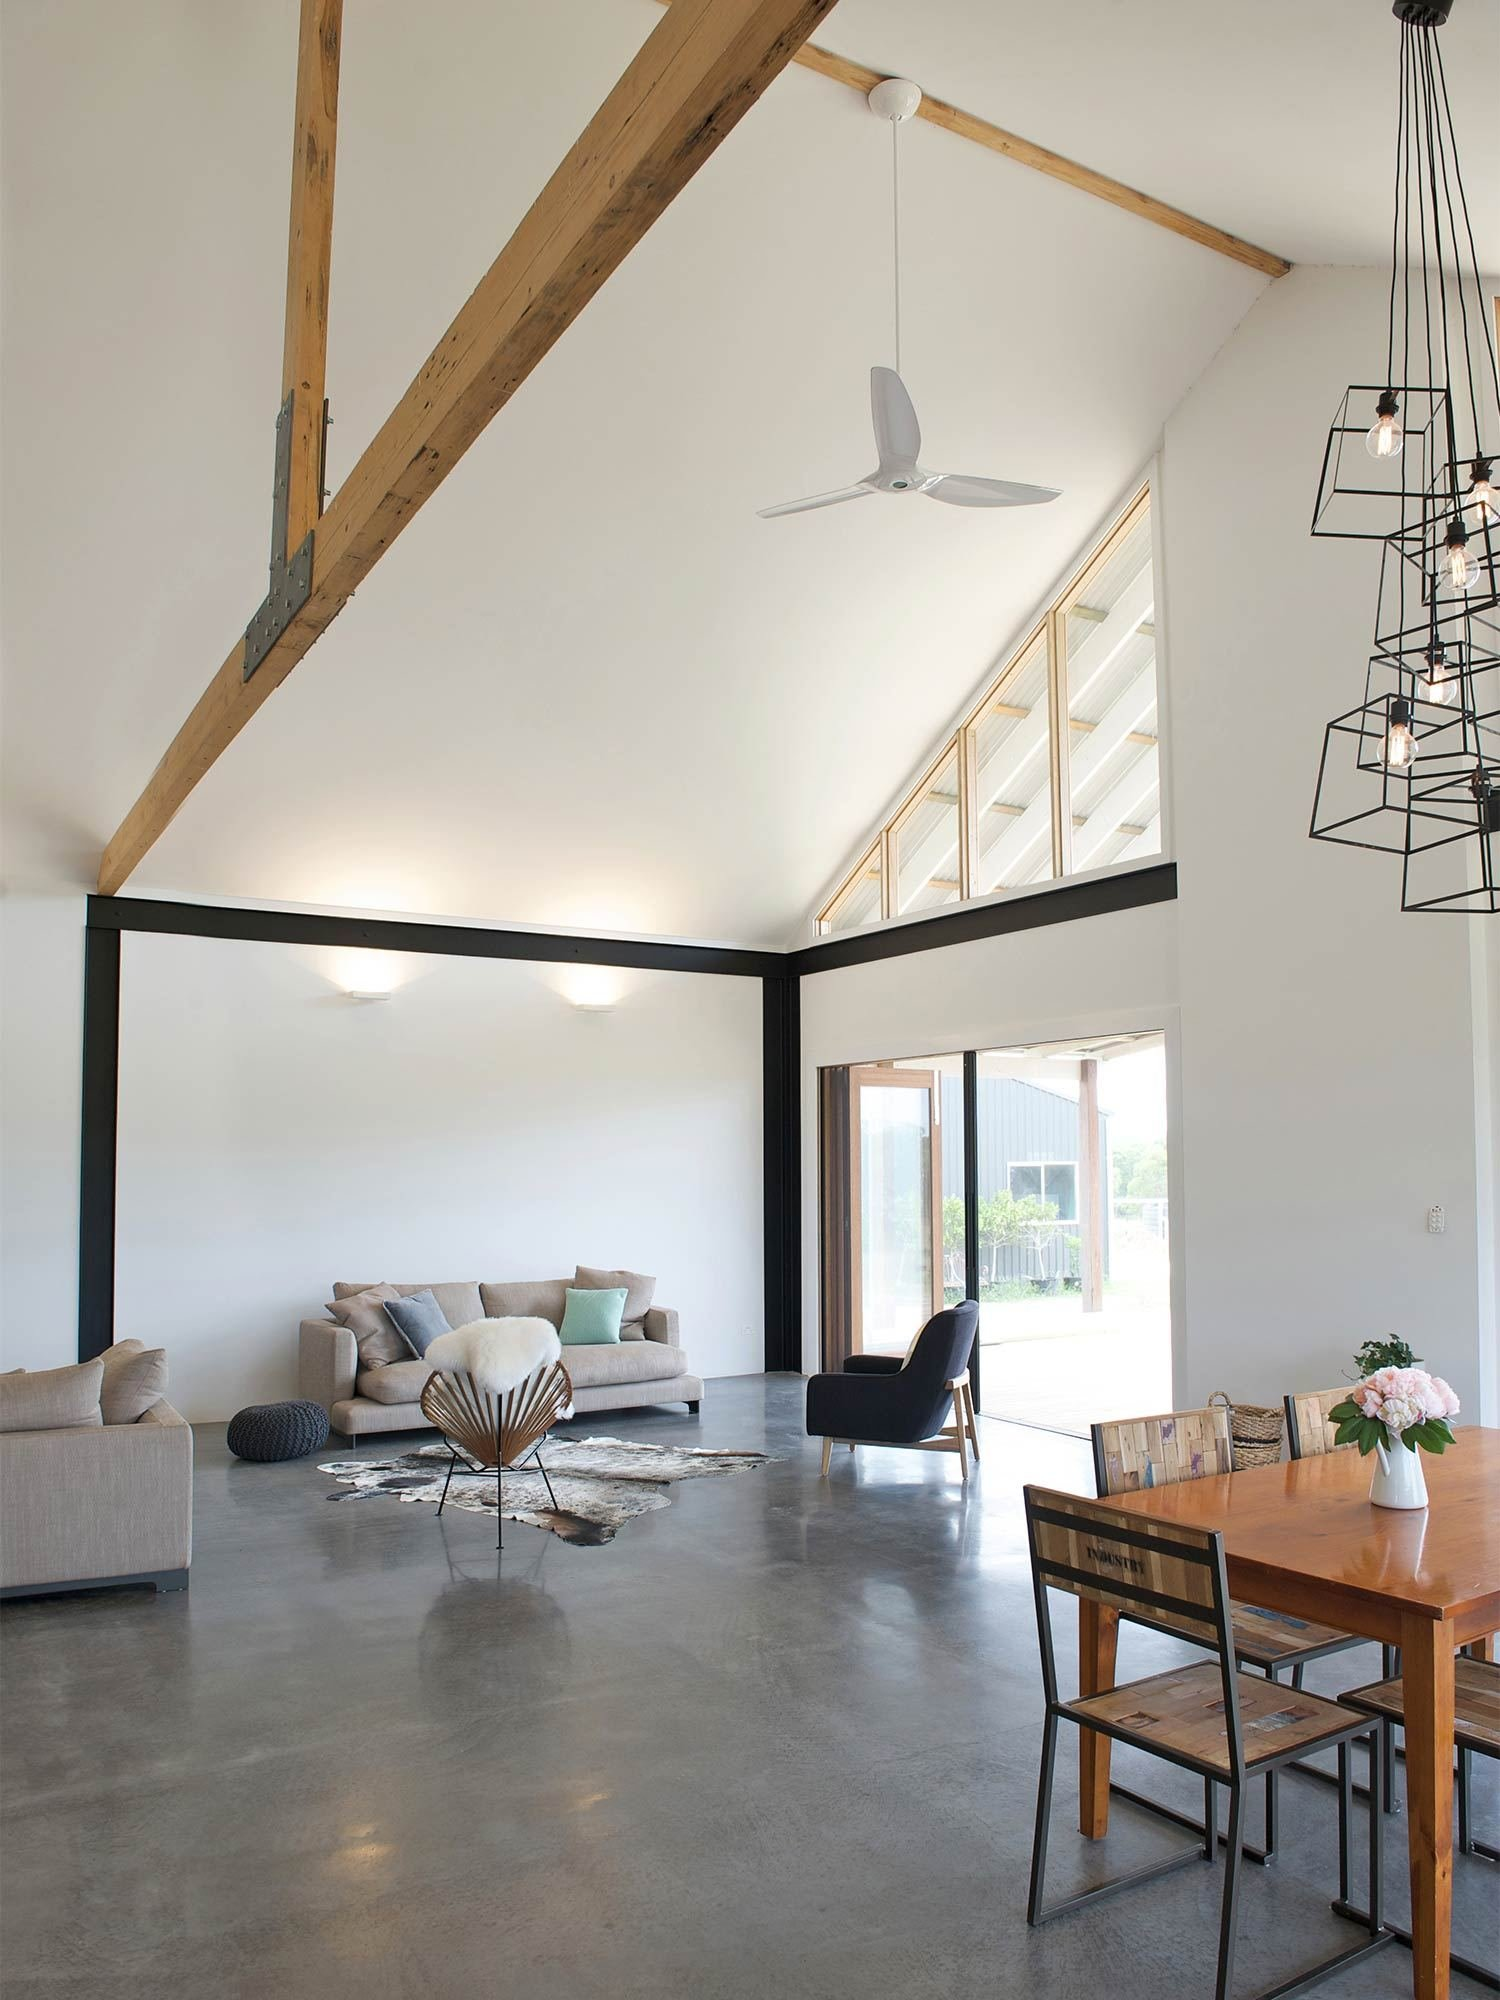 Best Plus Minus Pop Designs For Your Ceiling – Realestate Com Au With Pictures